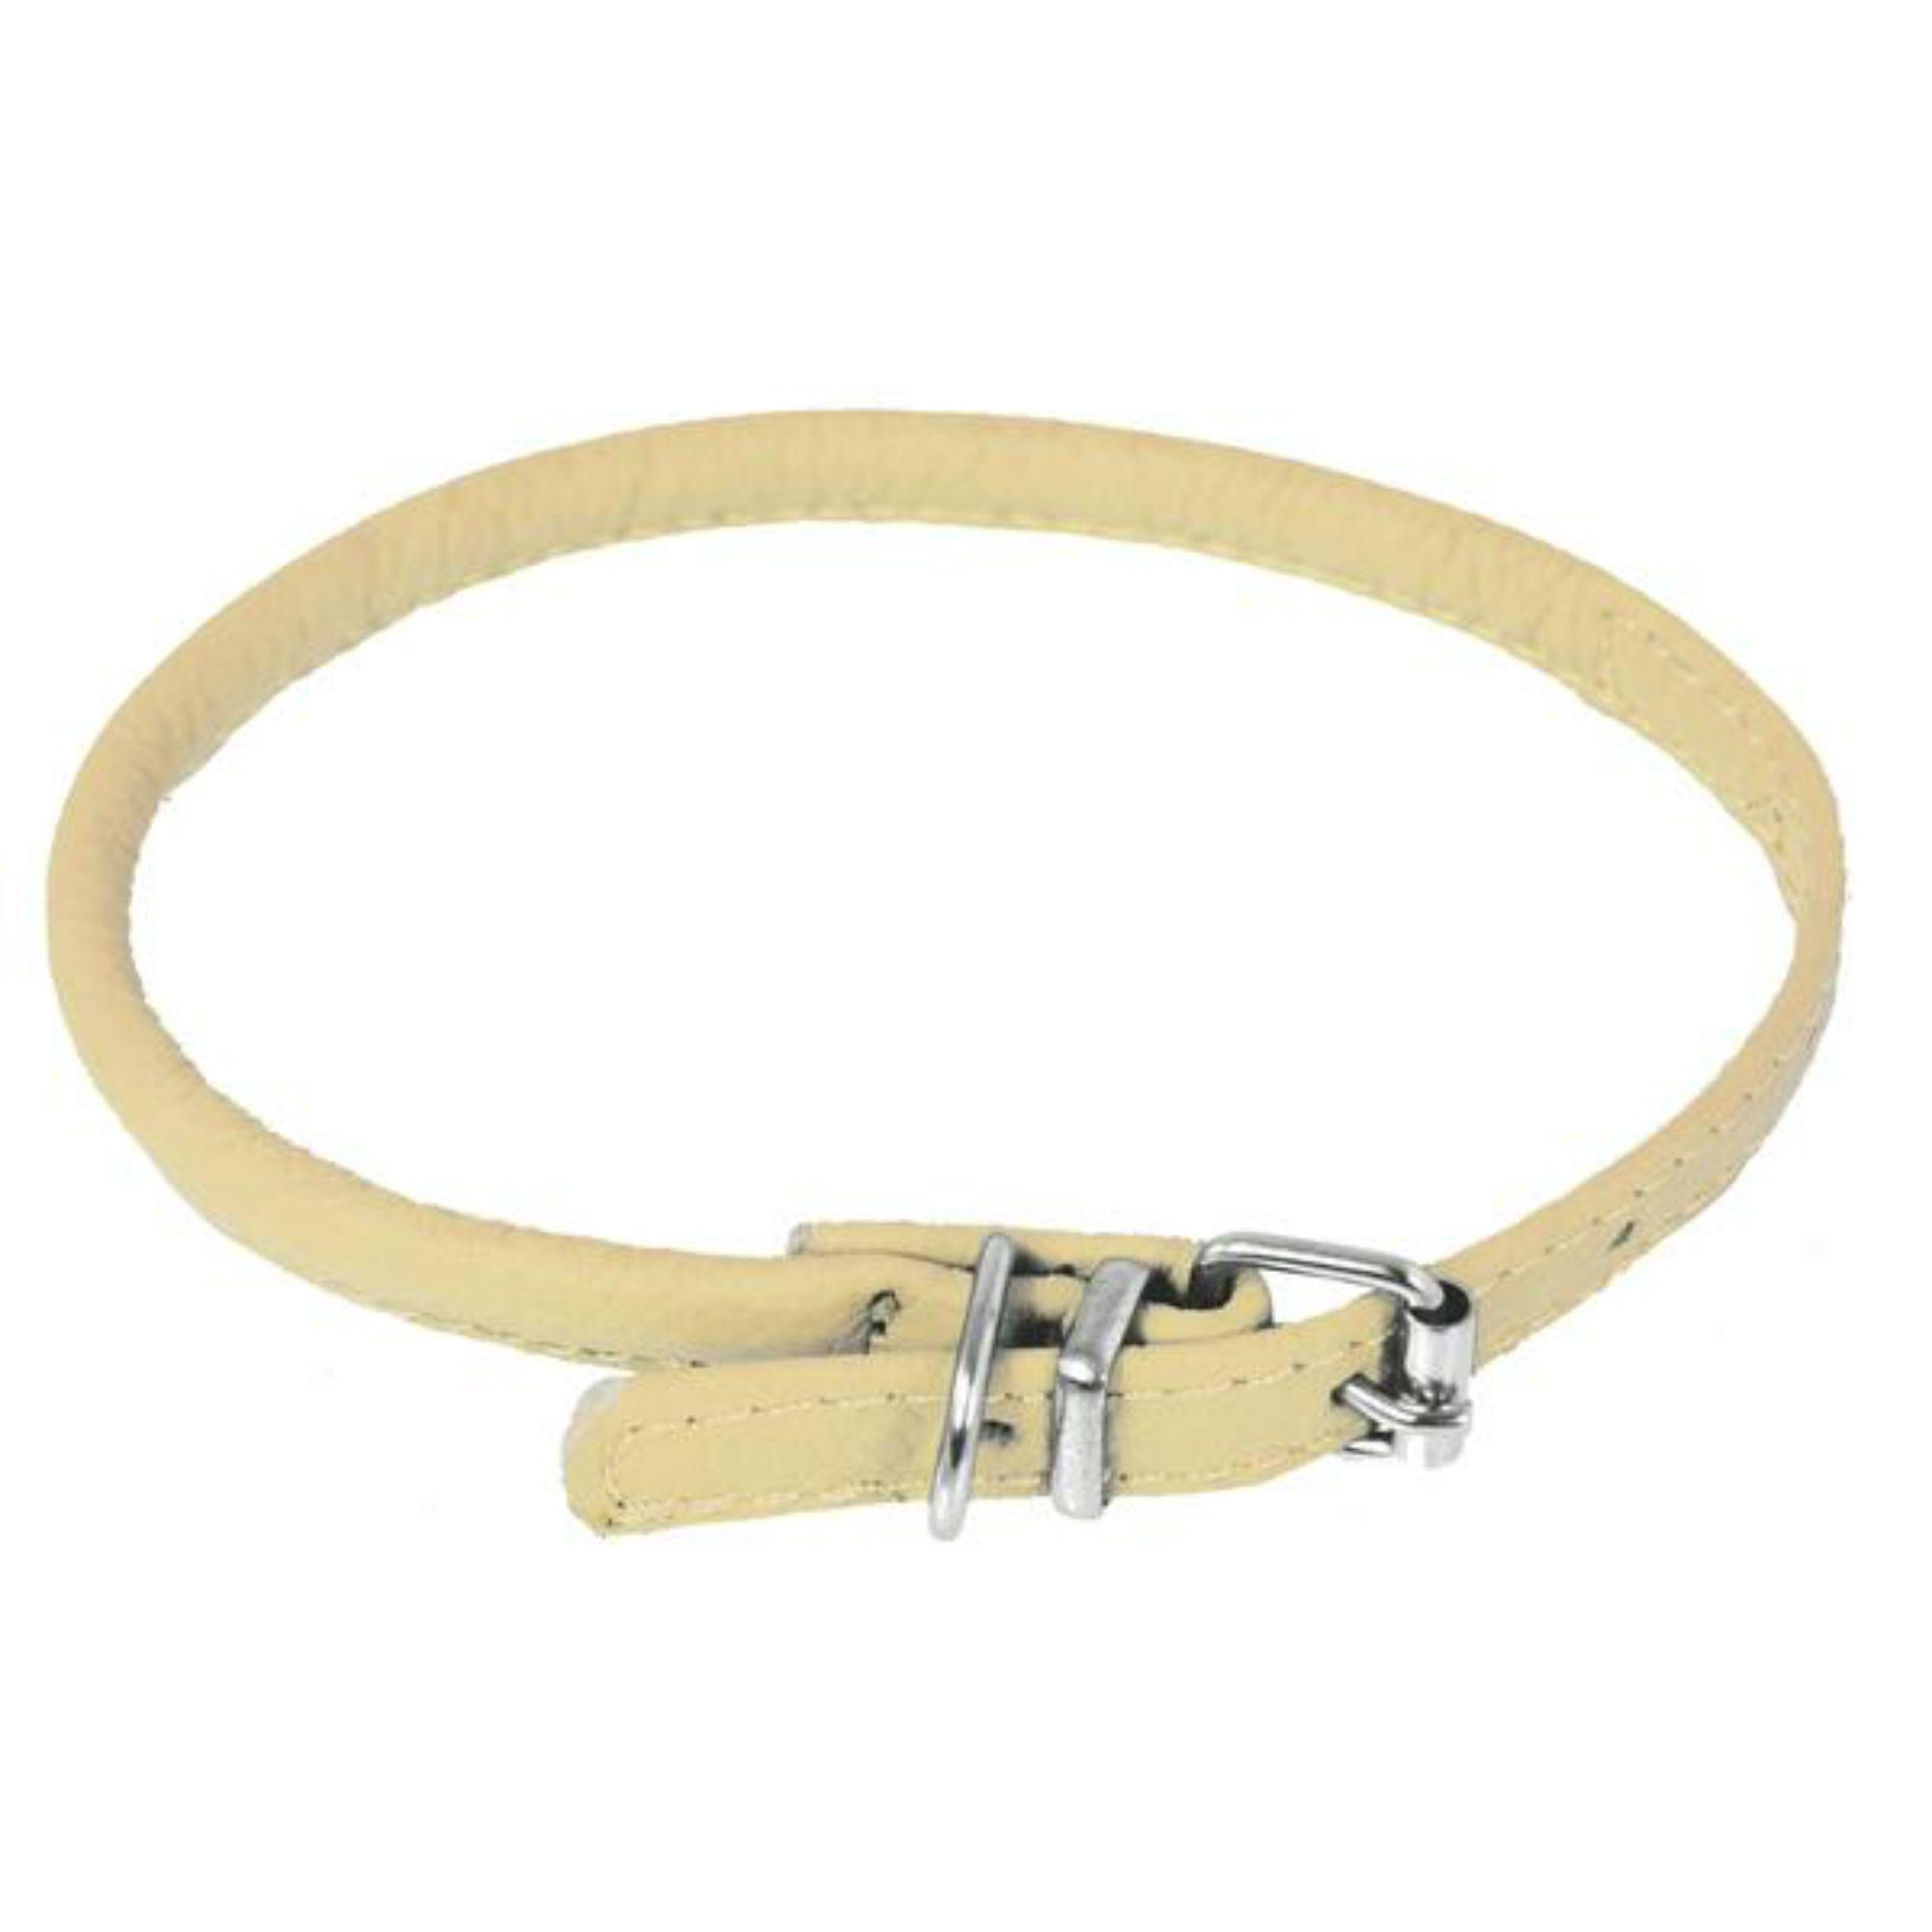 Soft Leather Round Dog Collar - Beige